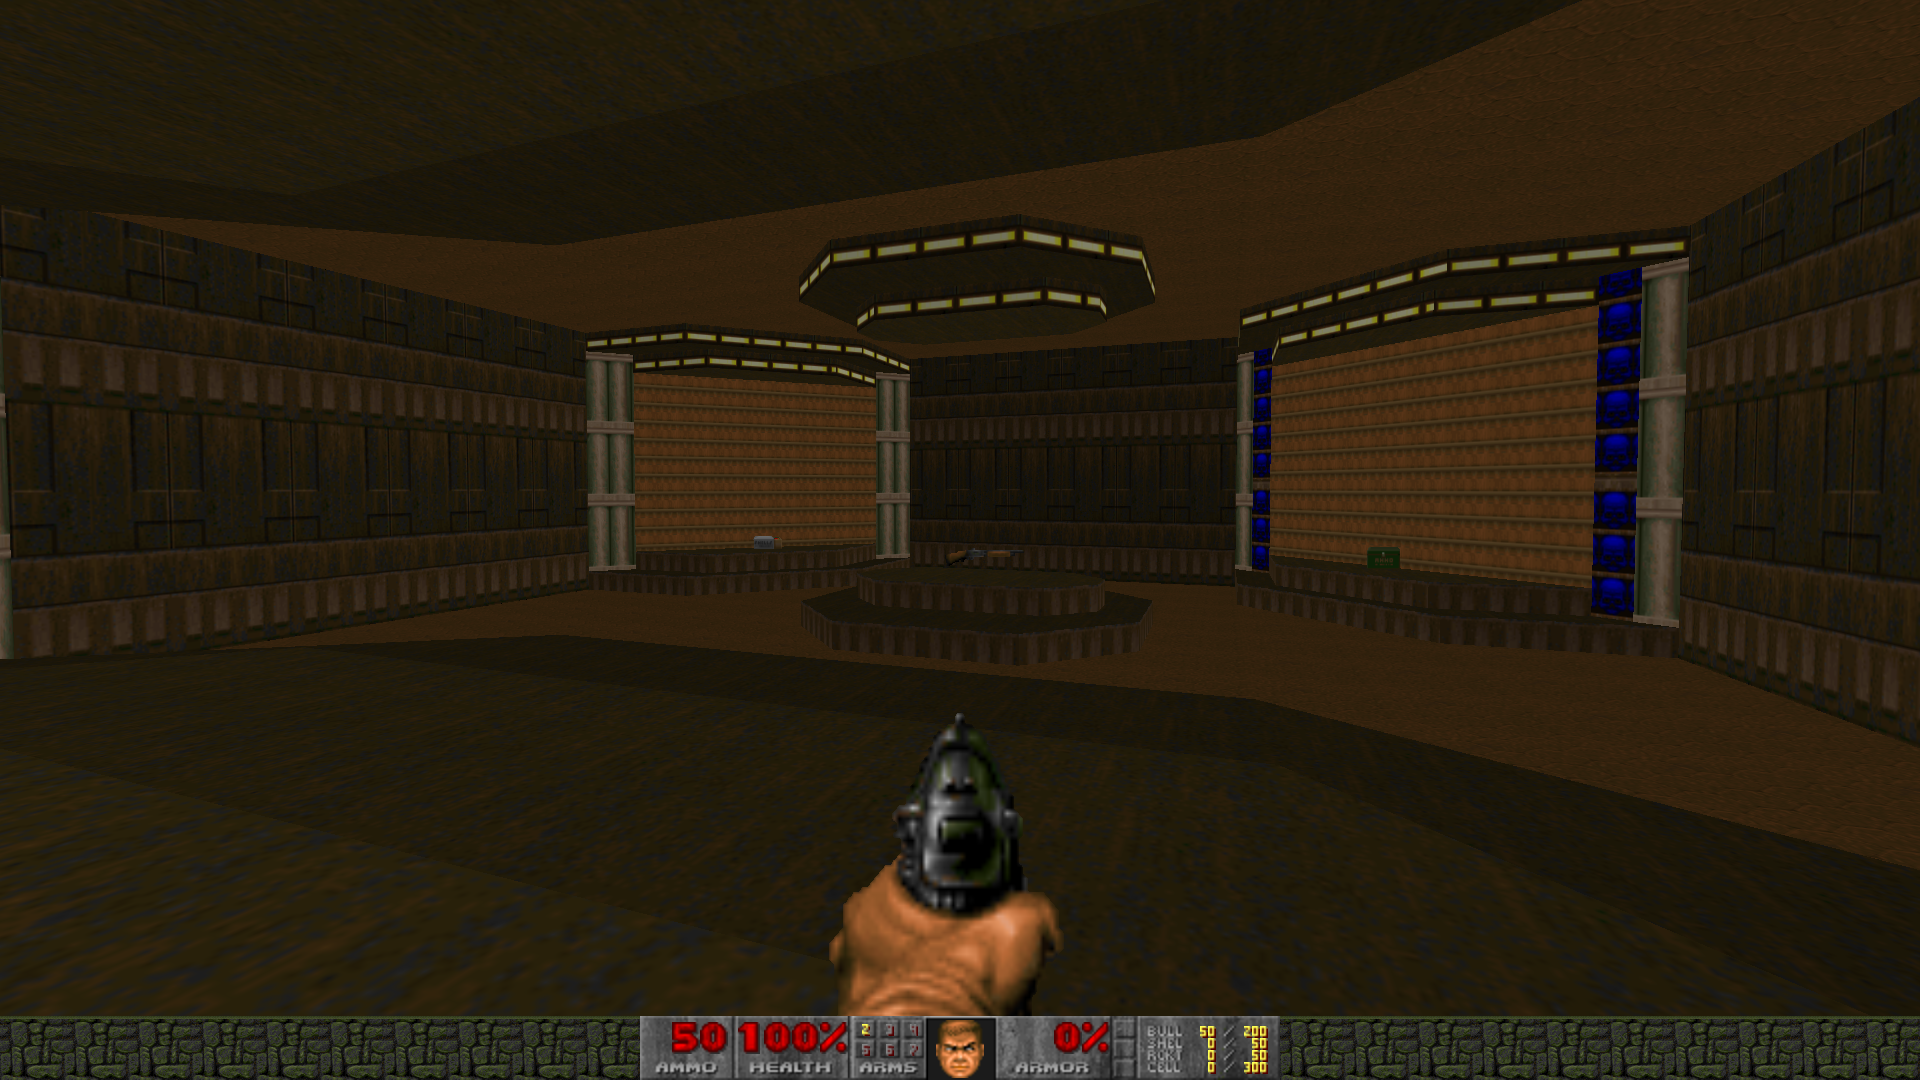 143657454_Entryway-DOOM2_HellonEarth13_04_202001_48_23.png.eb6703591abe1bc04af181b254c024e7.png